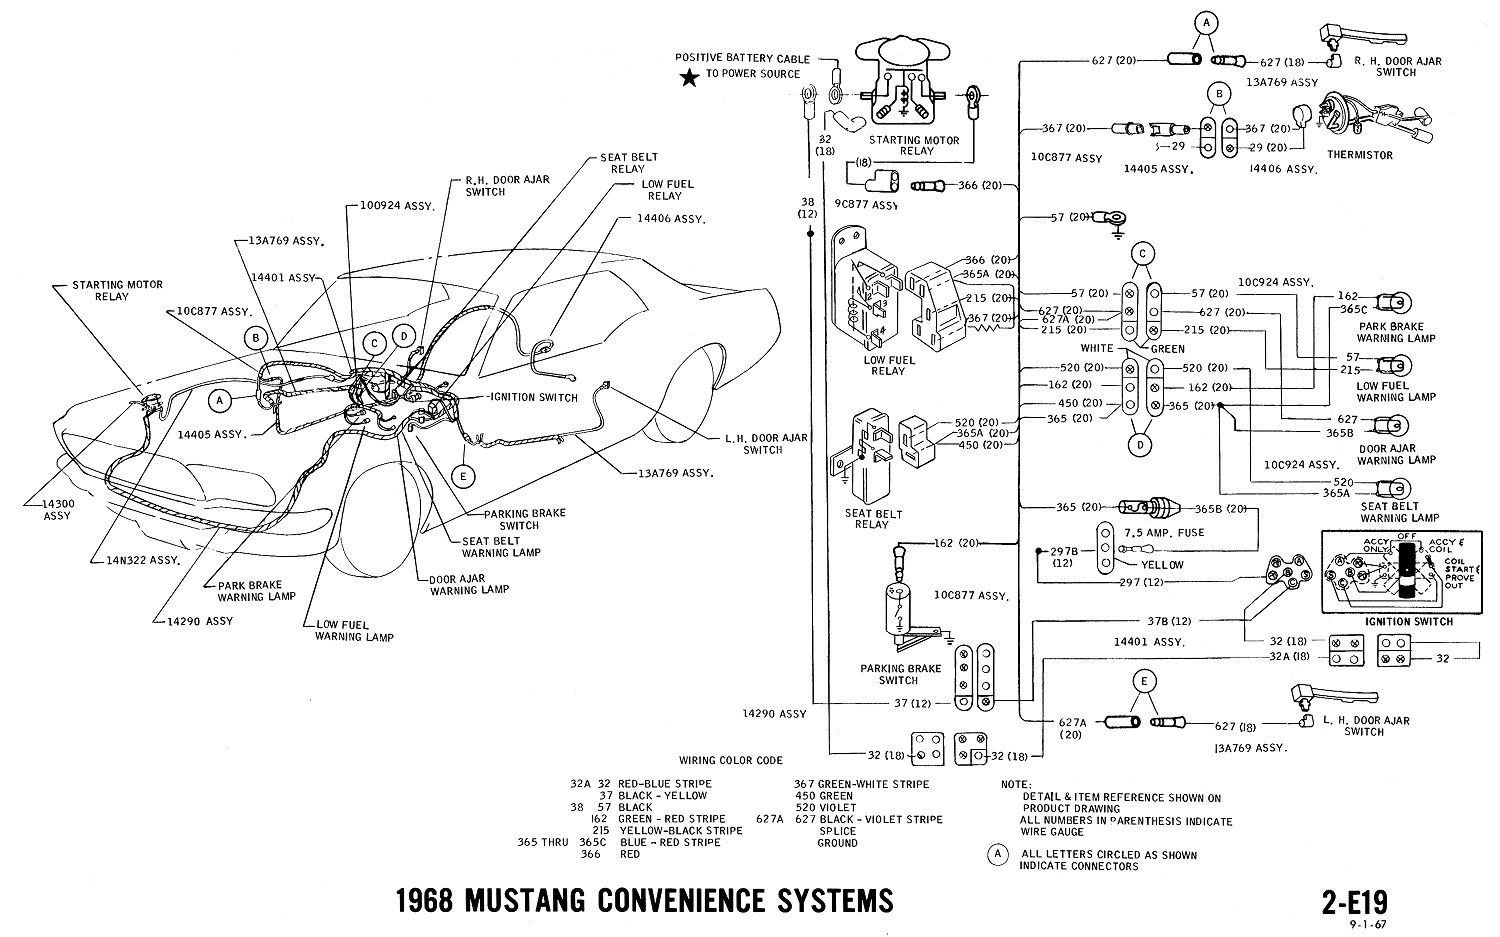 1968 mustang wiring diagrams and vacuum schematics - average joe restoration  average joe restoration